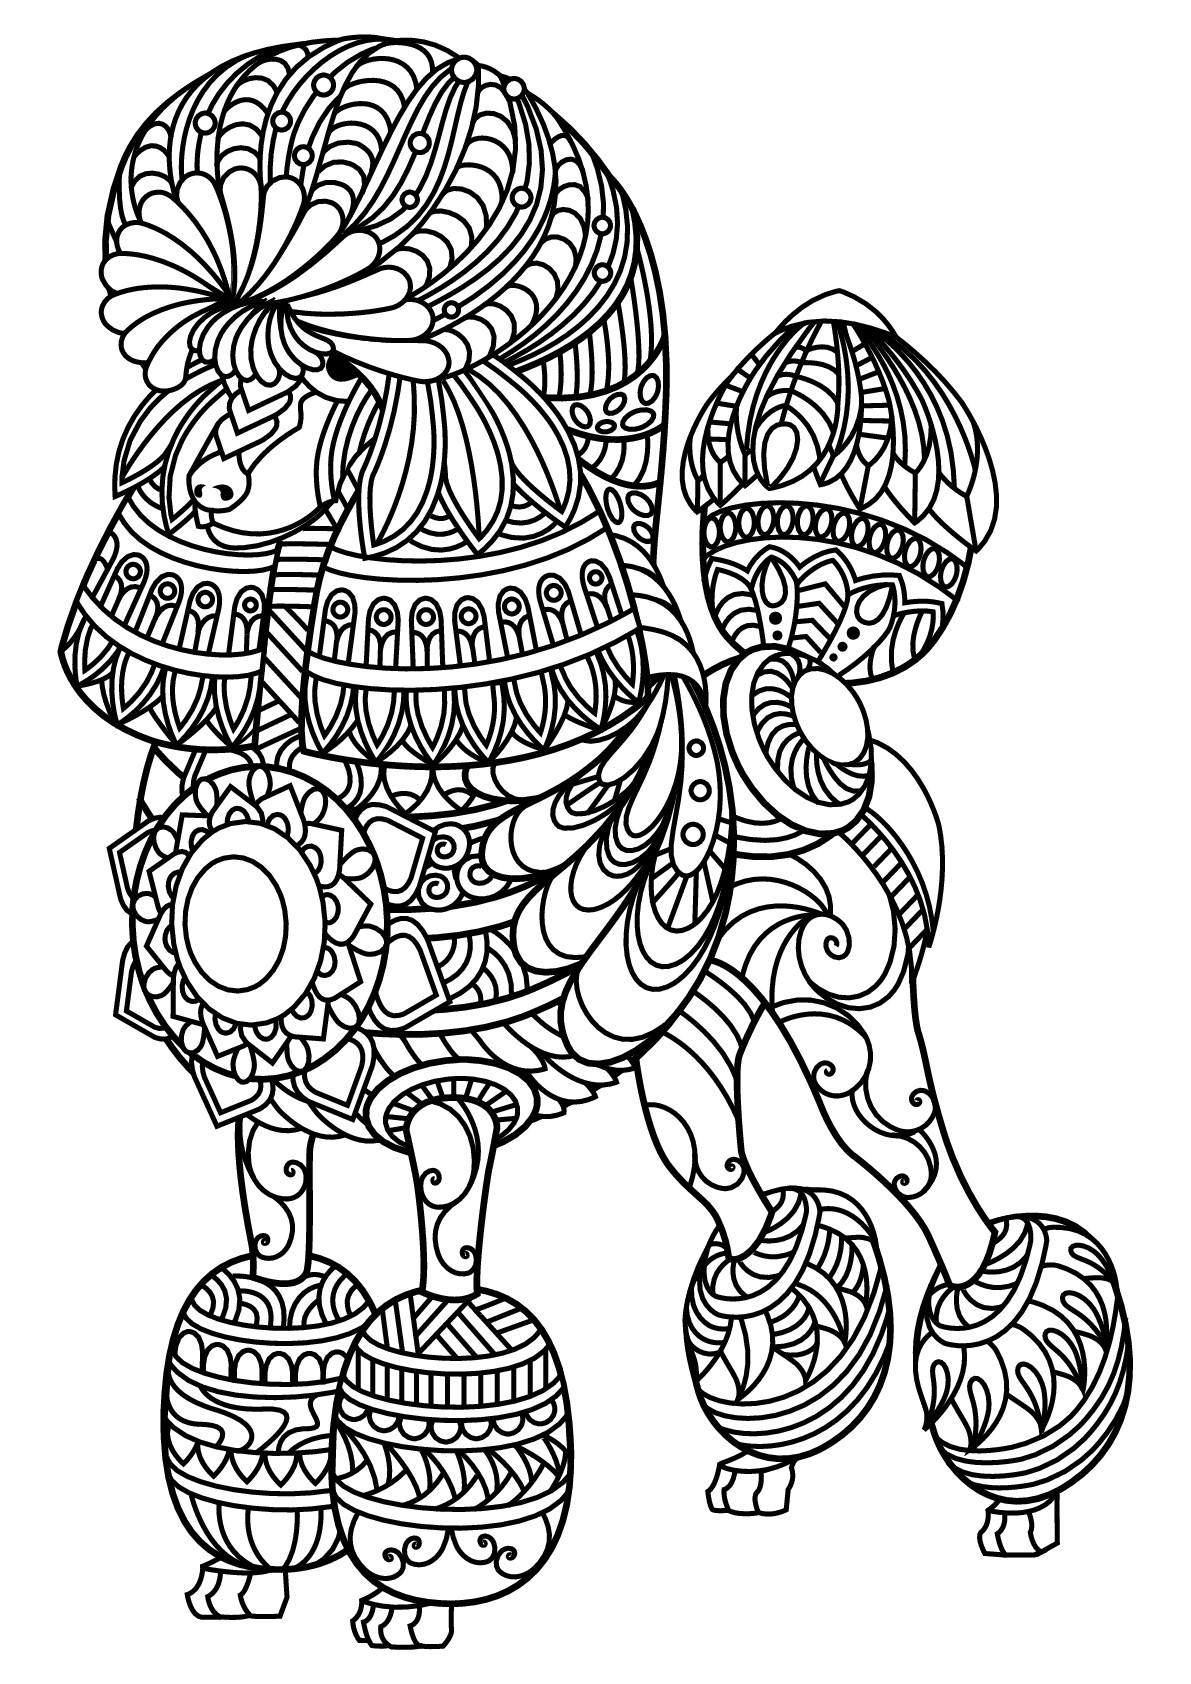 Best ideas about Coloring Pages For Adults Dogs . Save or Pin Free book dog poodle Dogs Adult Coloring Pages Now.